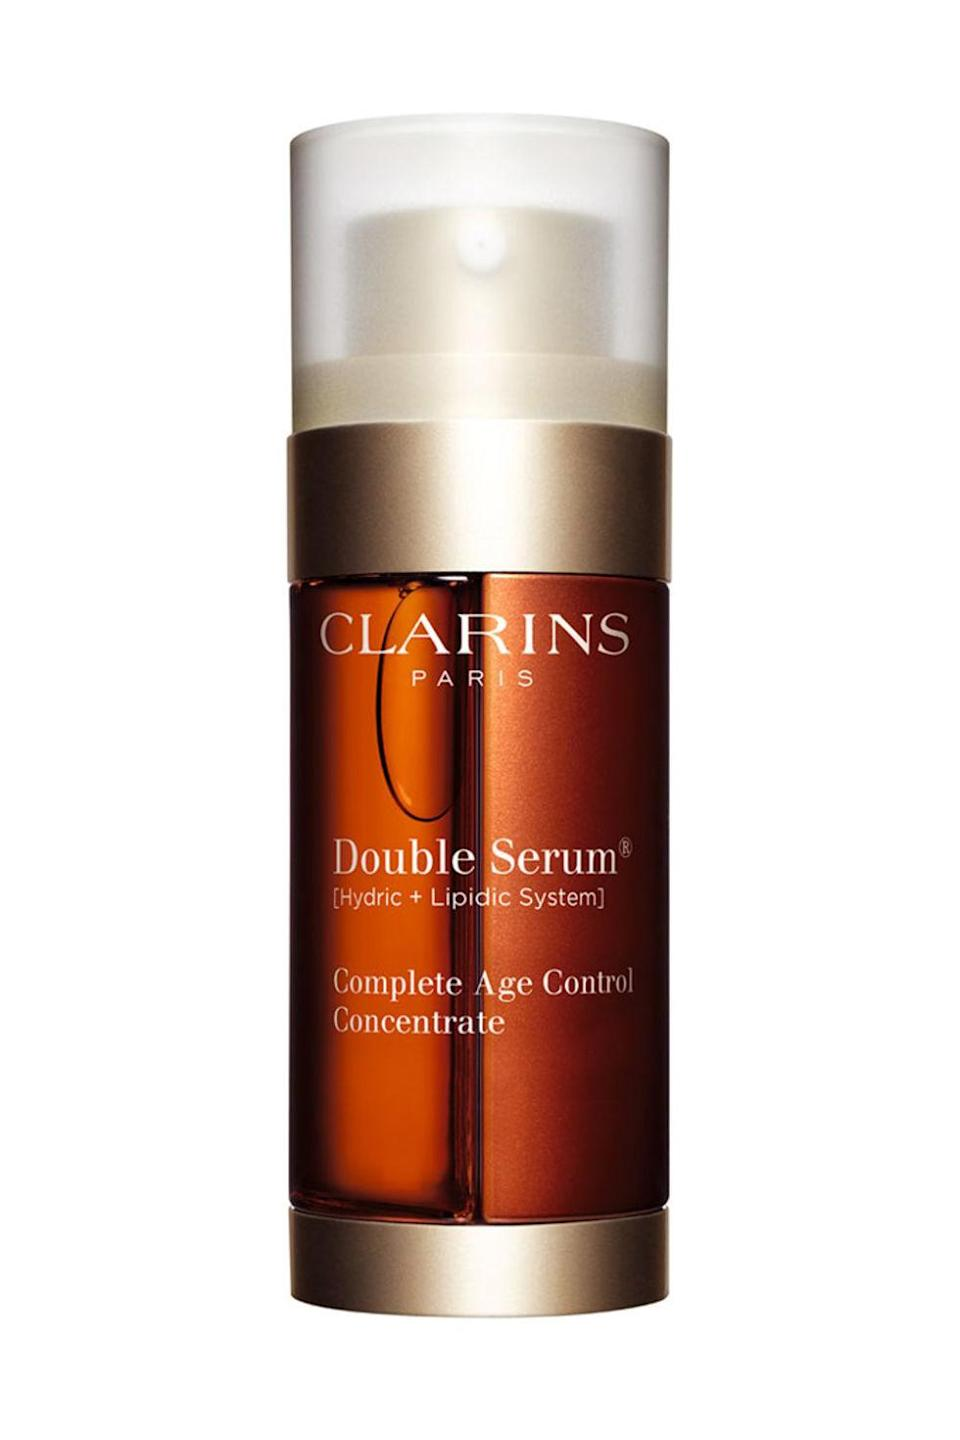 "<p>TWENTY plant extracts! For keeping you young-looking forever even though you've been having a midlife crisis since age 14. </p><p>$119, <a href=""http://shop.nordstrom.com/s/clarins-double-serum-complete-age-control-concentrate/3431180"" rel=""nofollow noopener"" target=""_blank"" data-ylk=""slk:shop.nordstrom.com"" class=""link rapid-noclick-resp"">shop.nordstrom.com</a>.</p>"